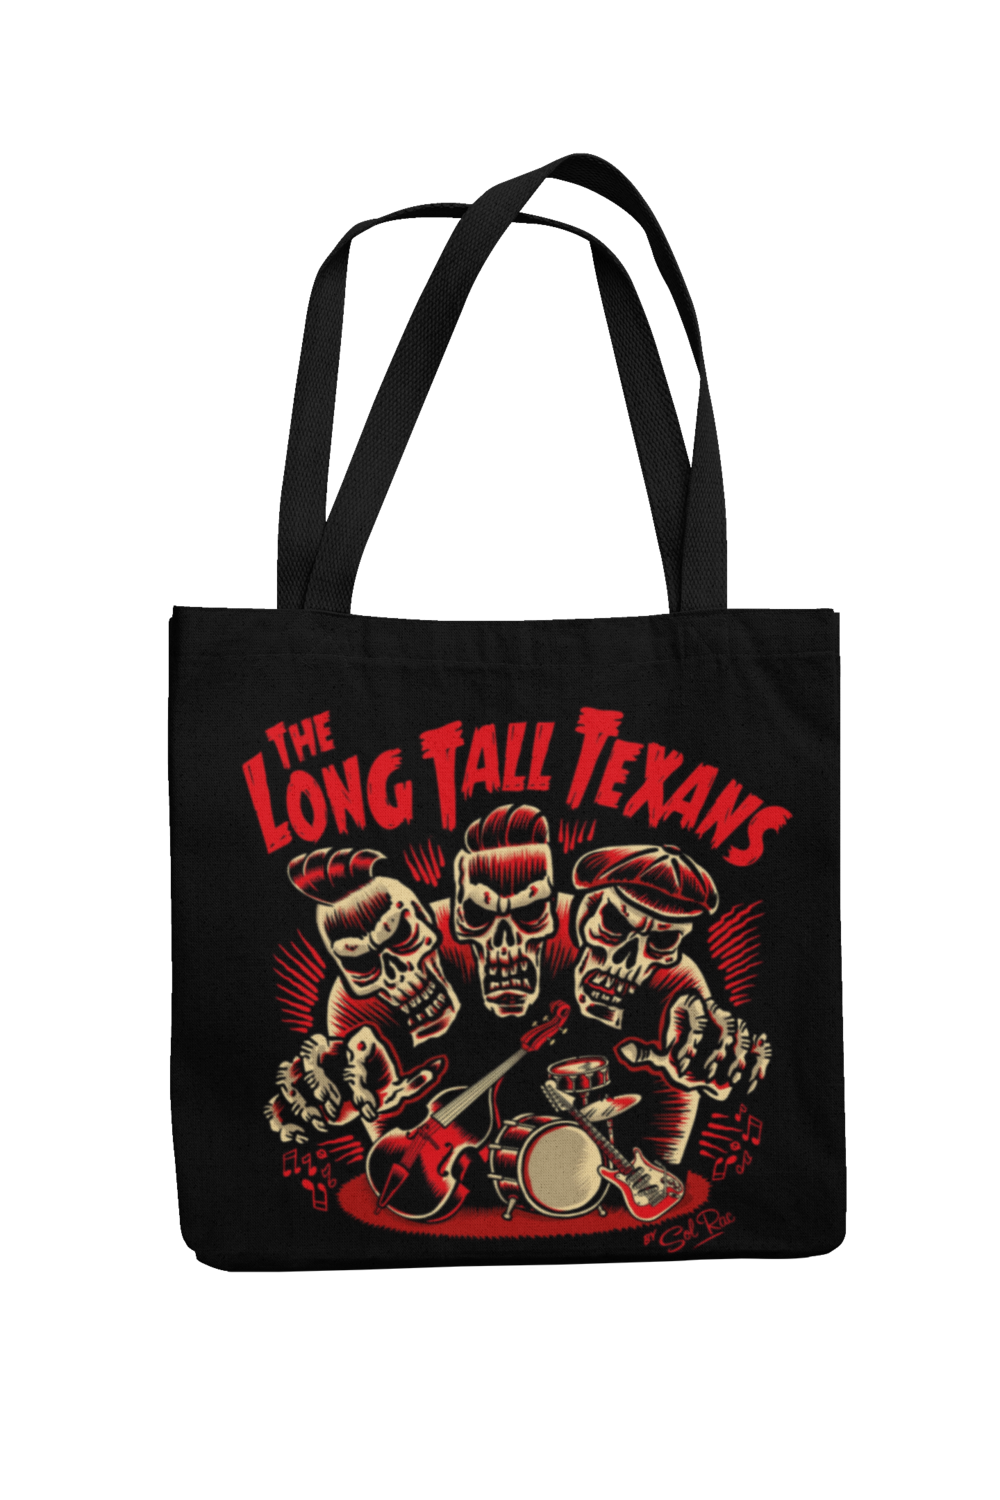 LONG TALL TEXANS Cotton Bag  3 skulls